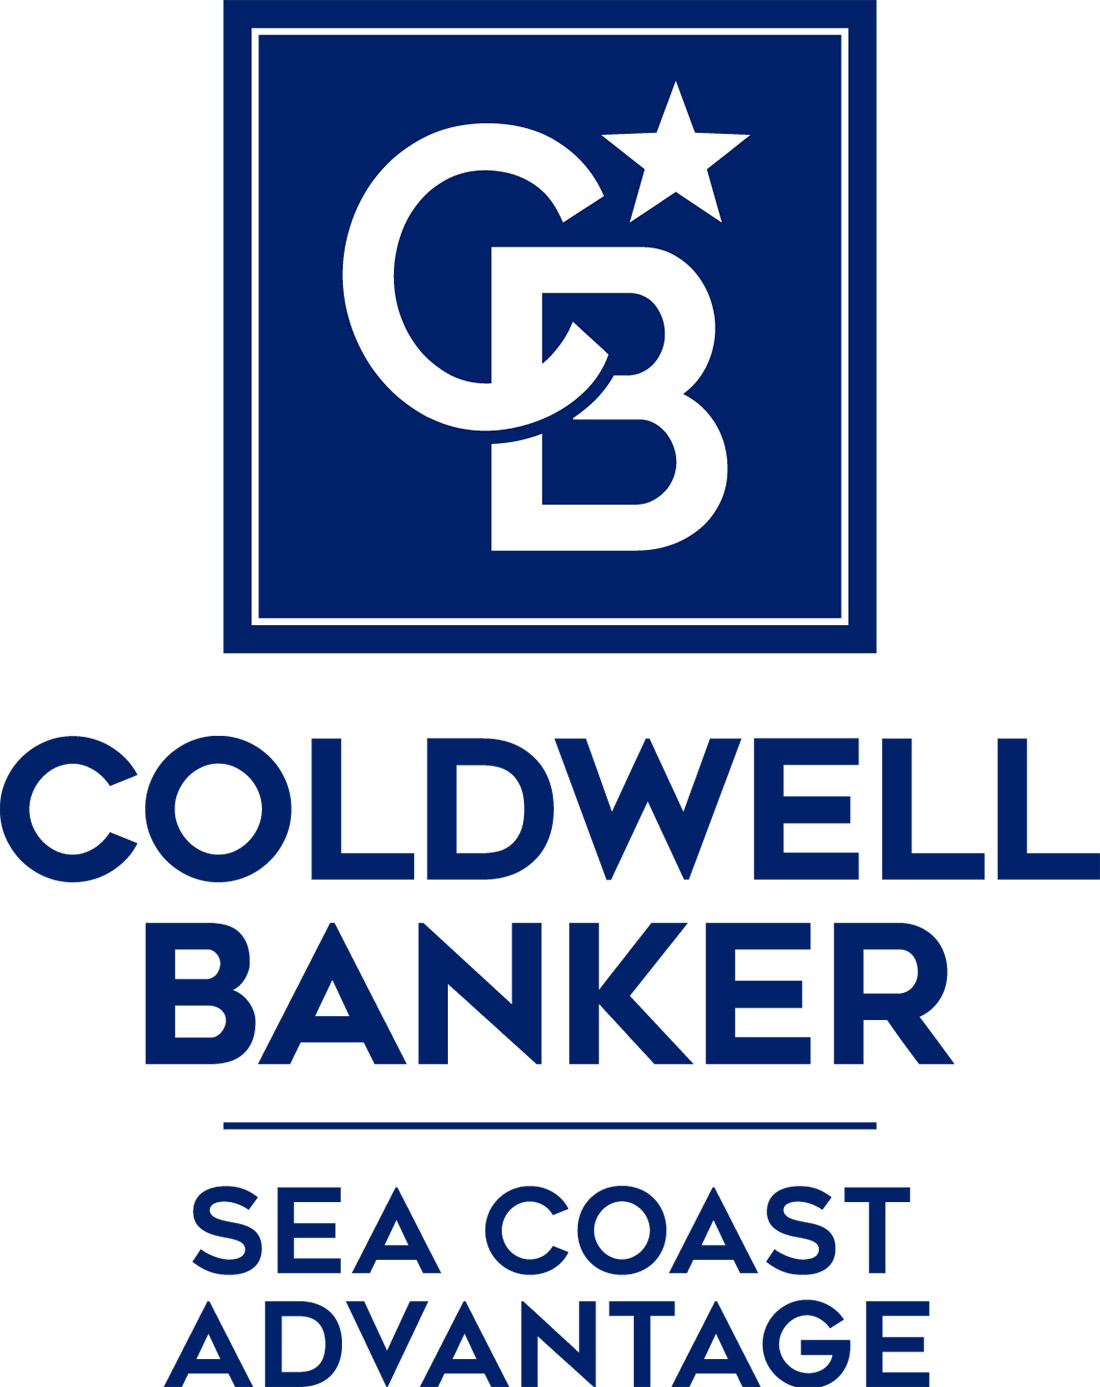 Saul Cohen - Coldwell Banker Sea Coast Advantage Realty